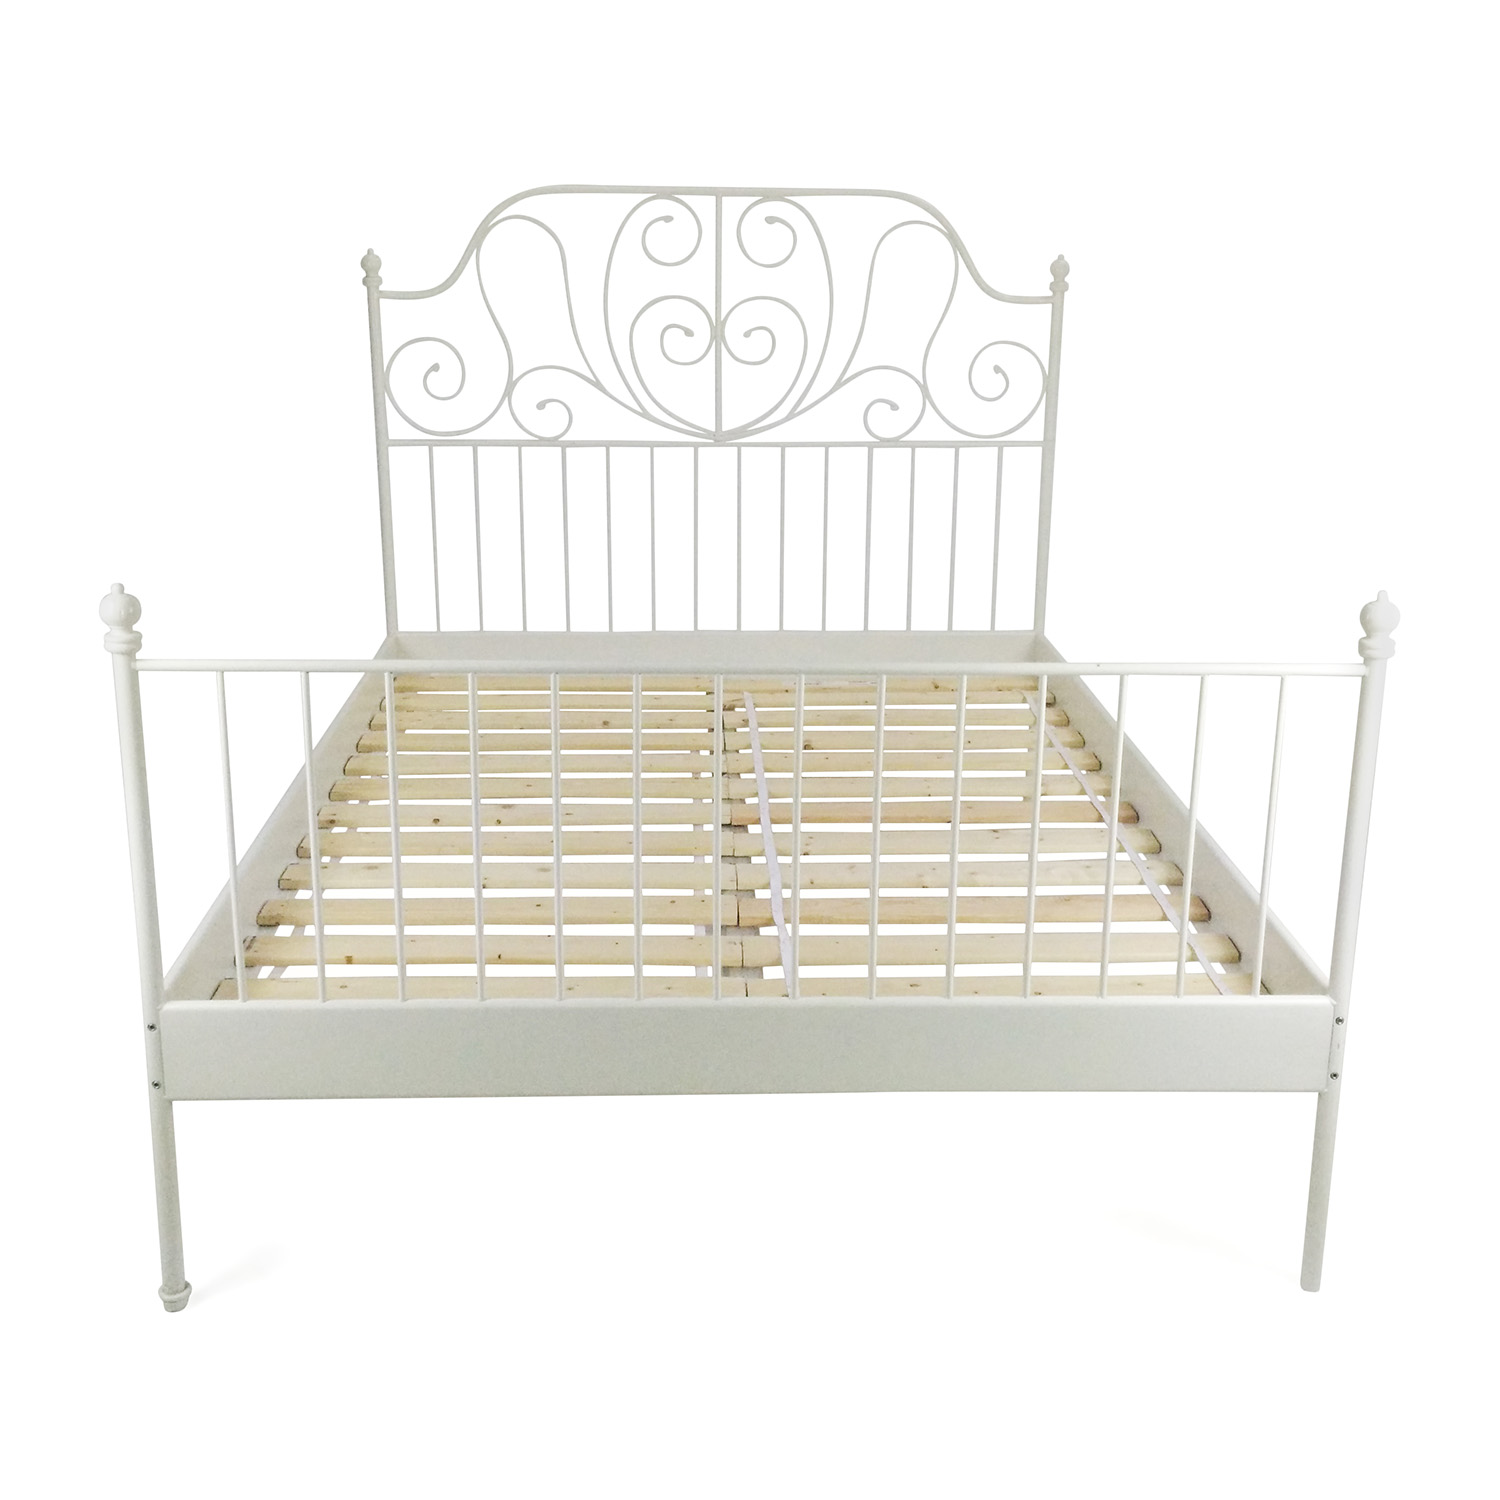 Ikea Queen Sized Iron Bed Frame